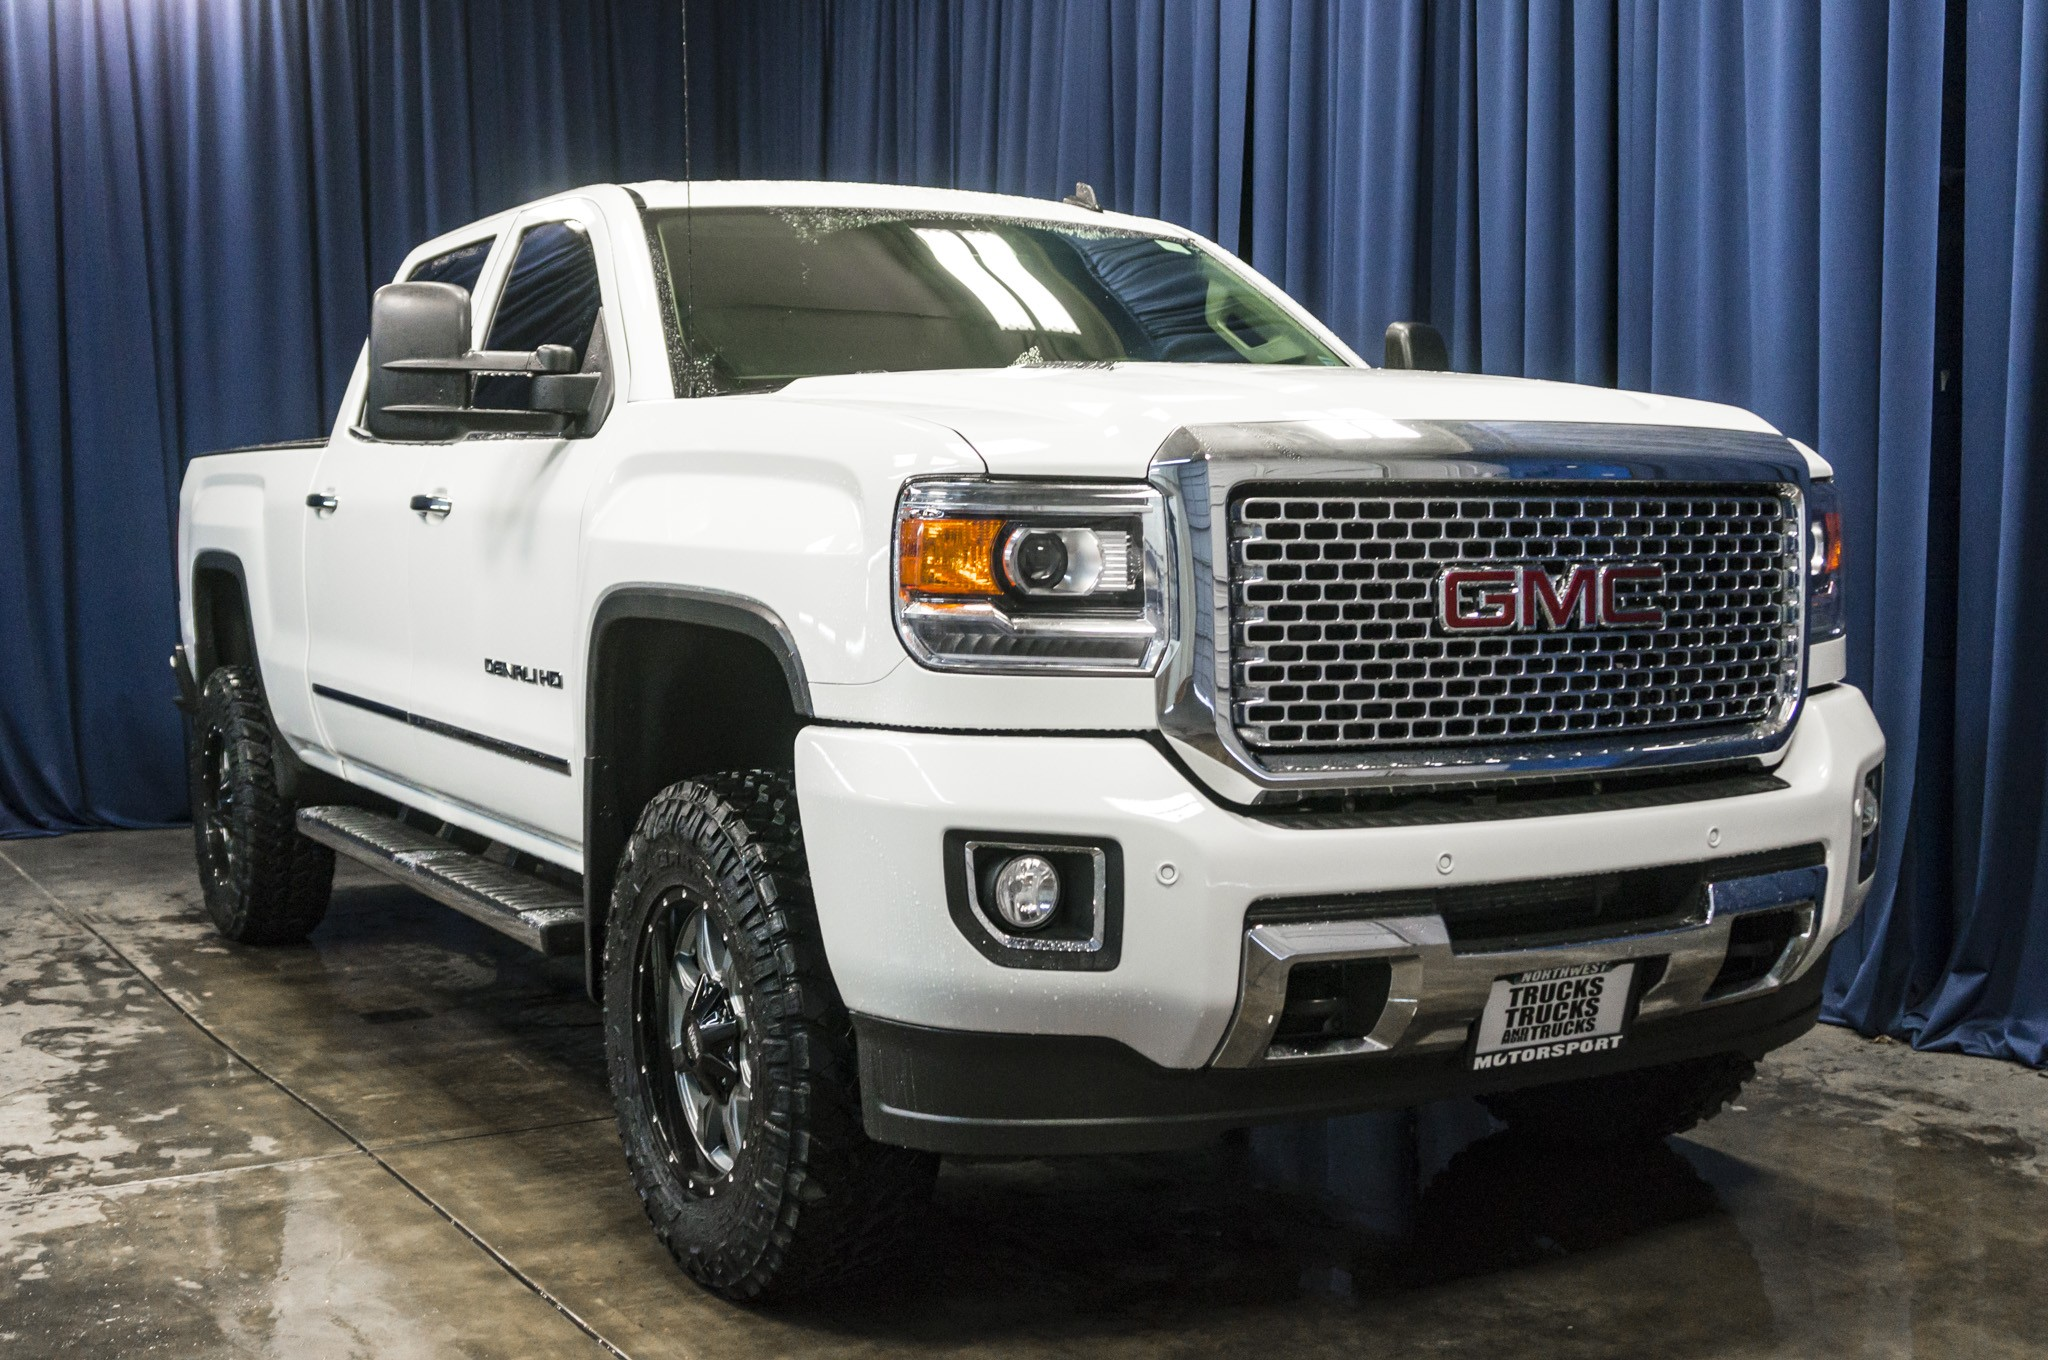 used lifted 2015 gmc sierra 2500hd denali 4x4 diesel truck for sale 39396. Black Bedroom Furniture Sets. Home Design Ideas